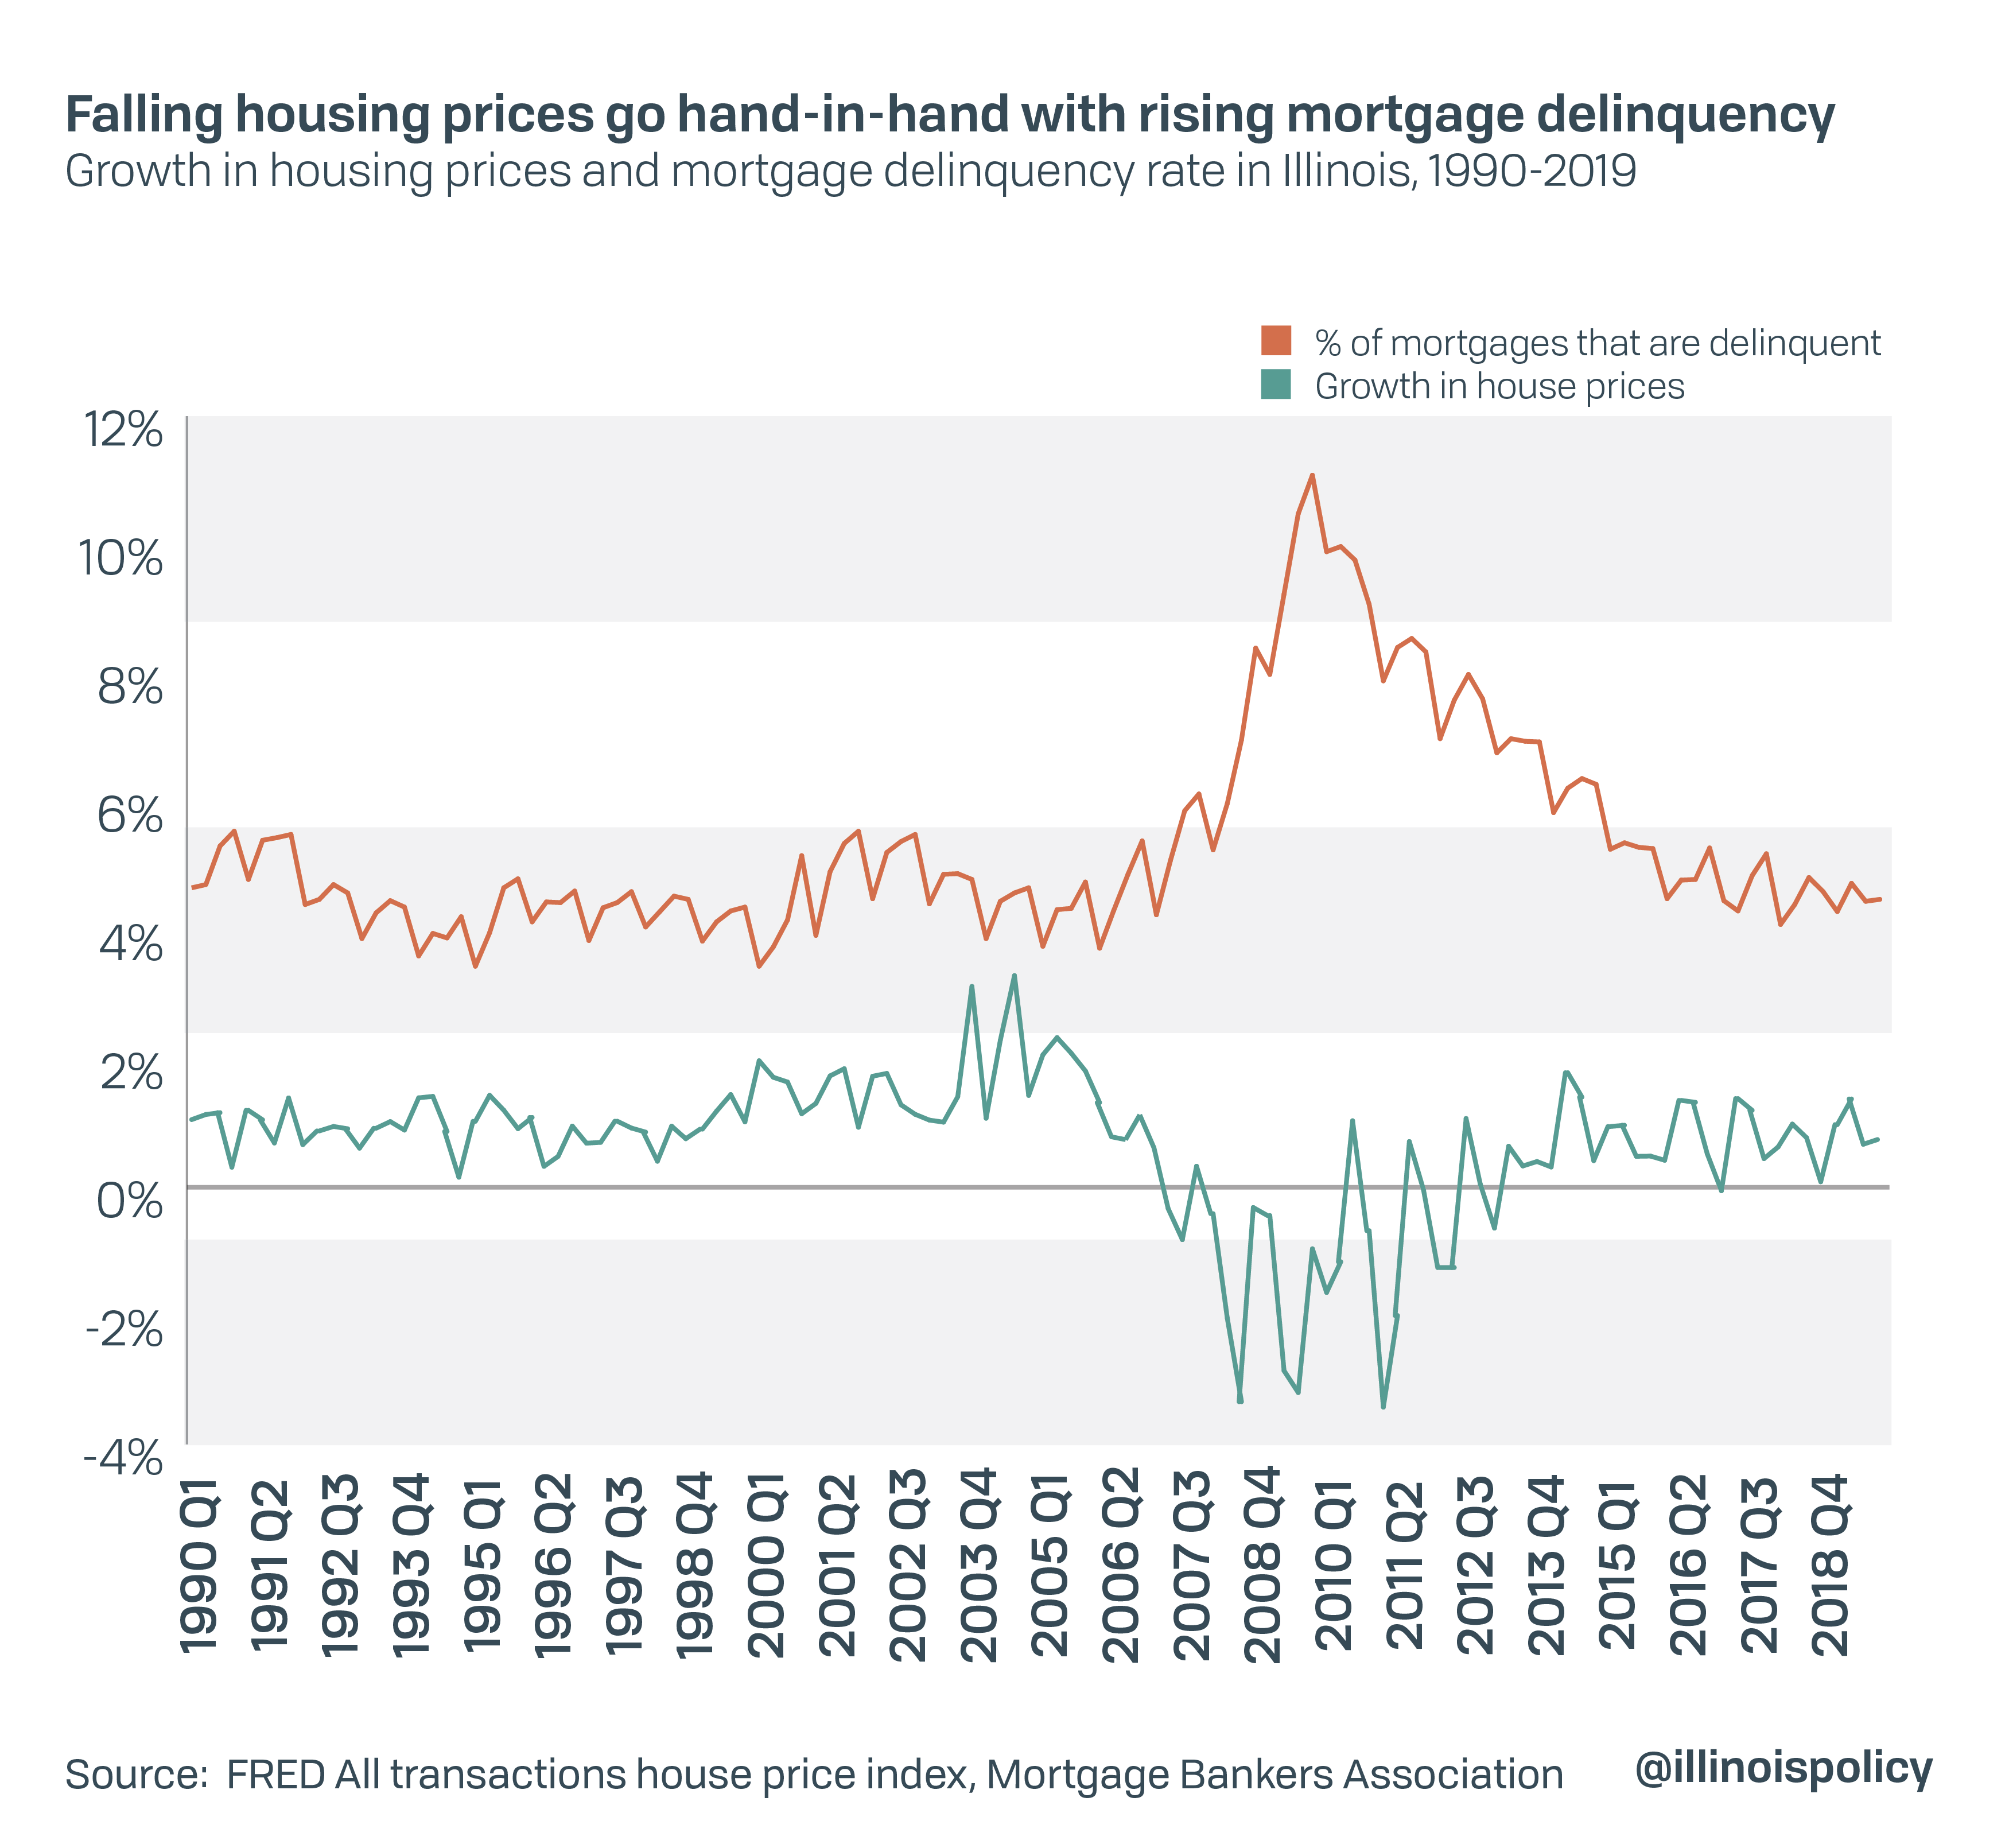 Falling housing prices go hand-in-hand with rising mortgage delinquency